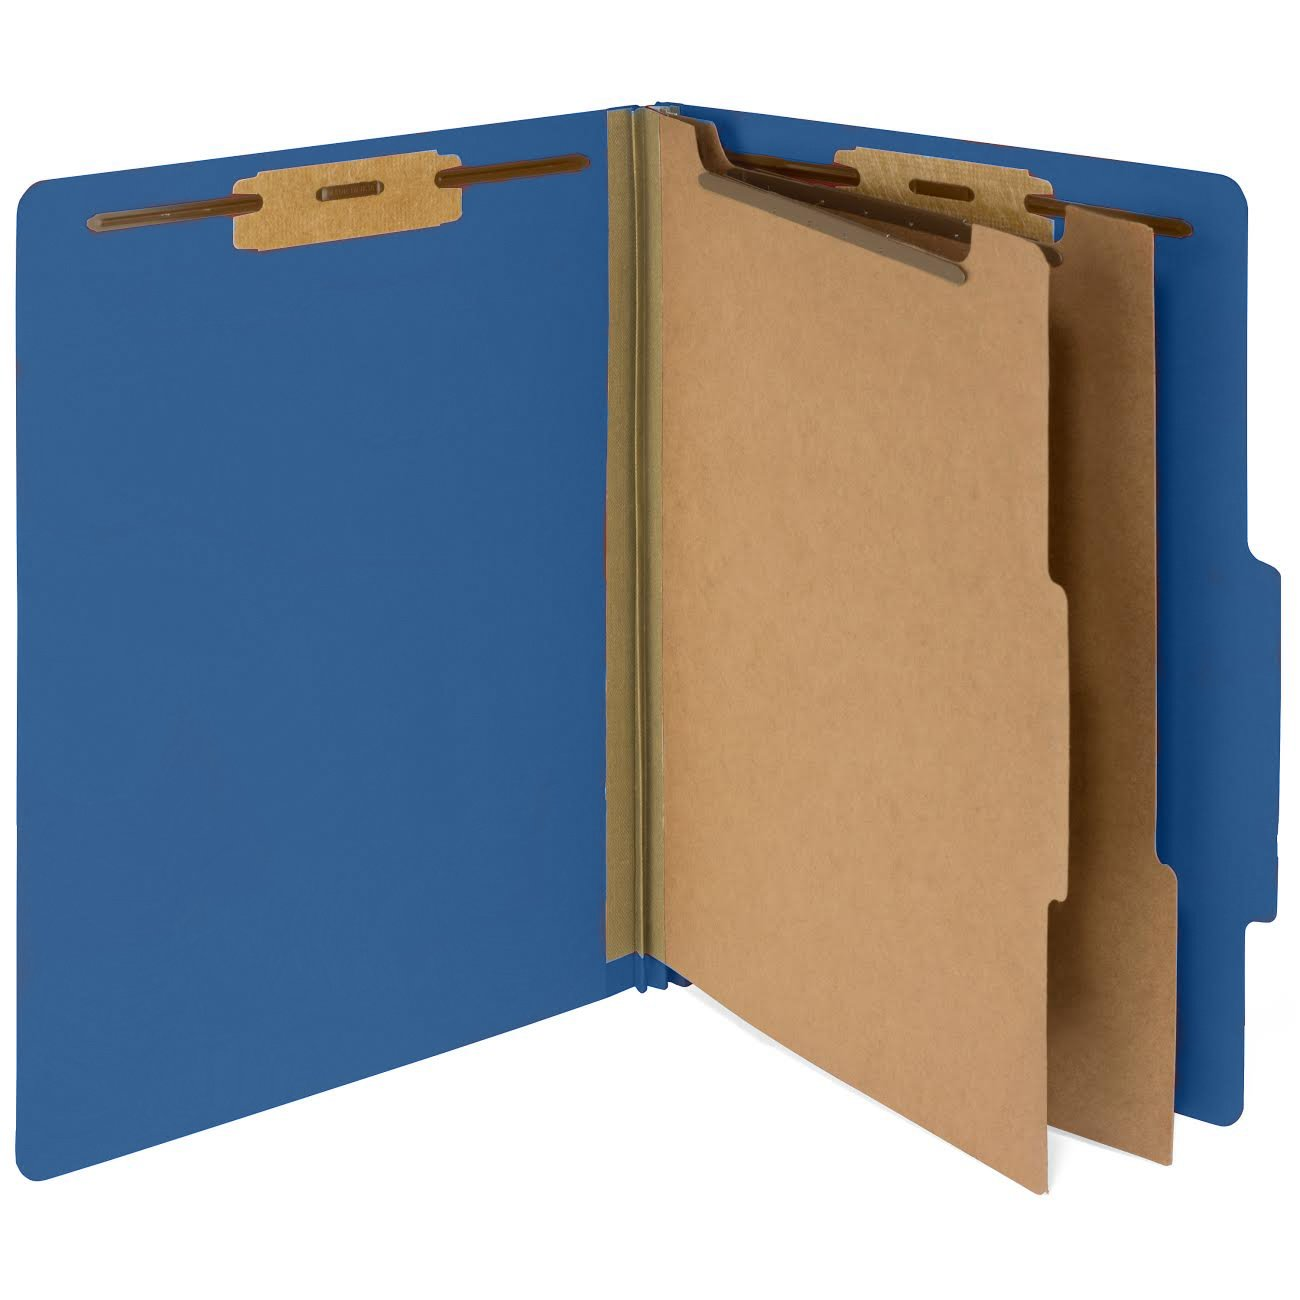 10 Dark Blue Classification Folders, 2 Divider, 2'' Tyvek Expansions, Durable 2 Prongs designed to Organize Standard Medical Files, Law Client Files, Letter Size, Dark Blue, 10 PACK (326)